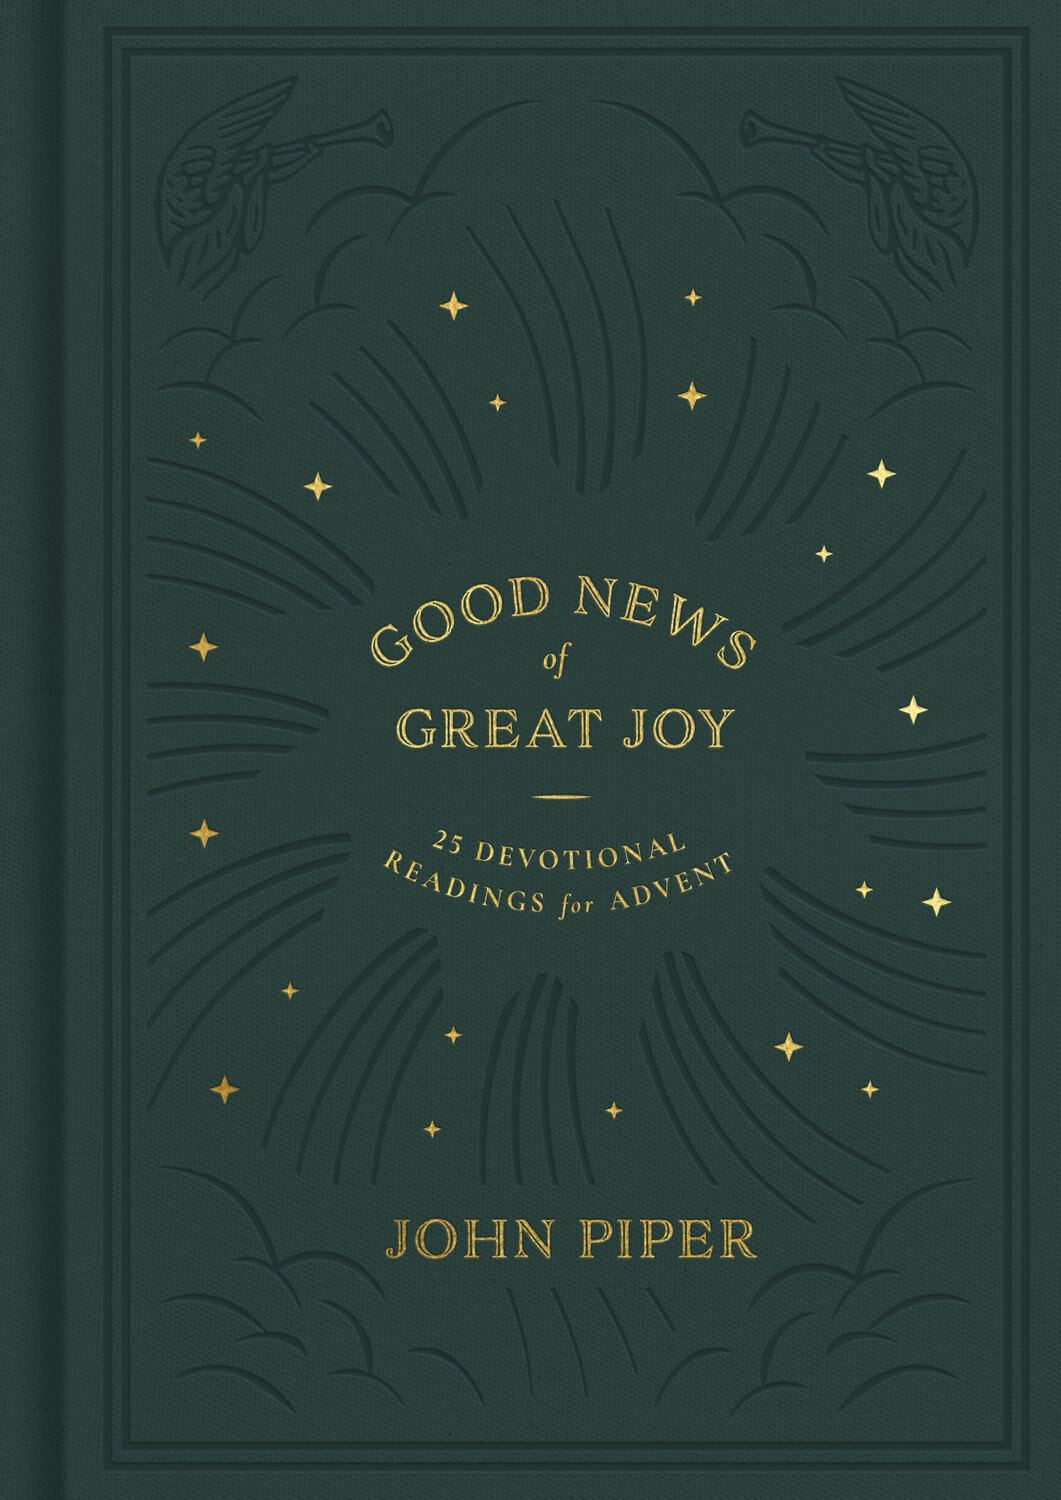 Good News of Great Joy: 25 Devotional Readings for Advent